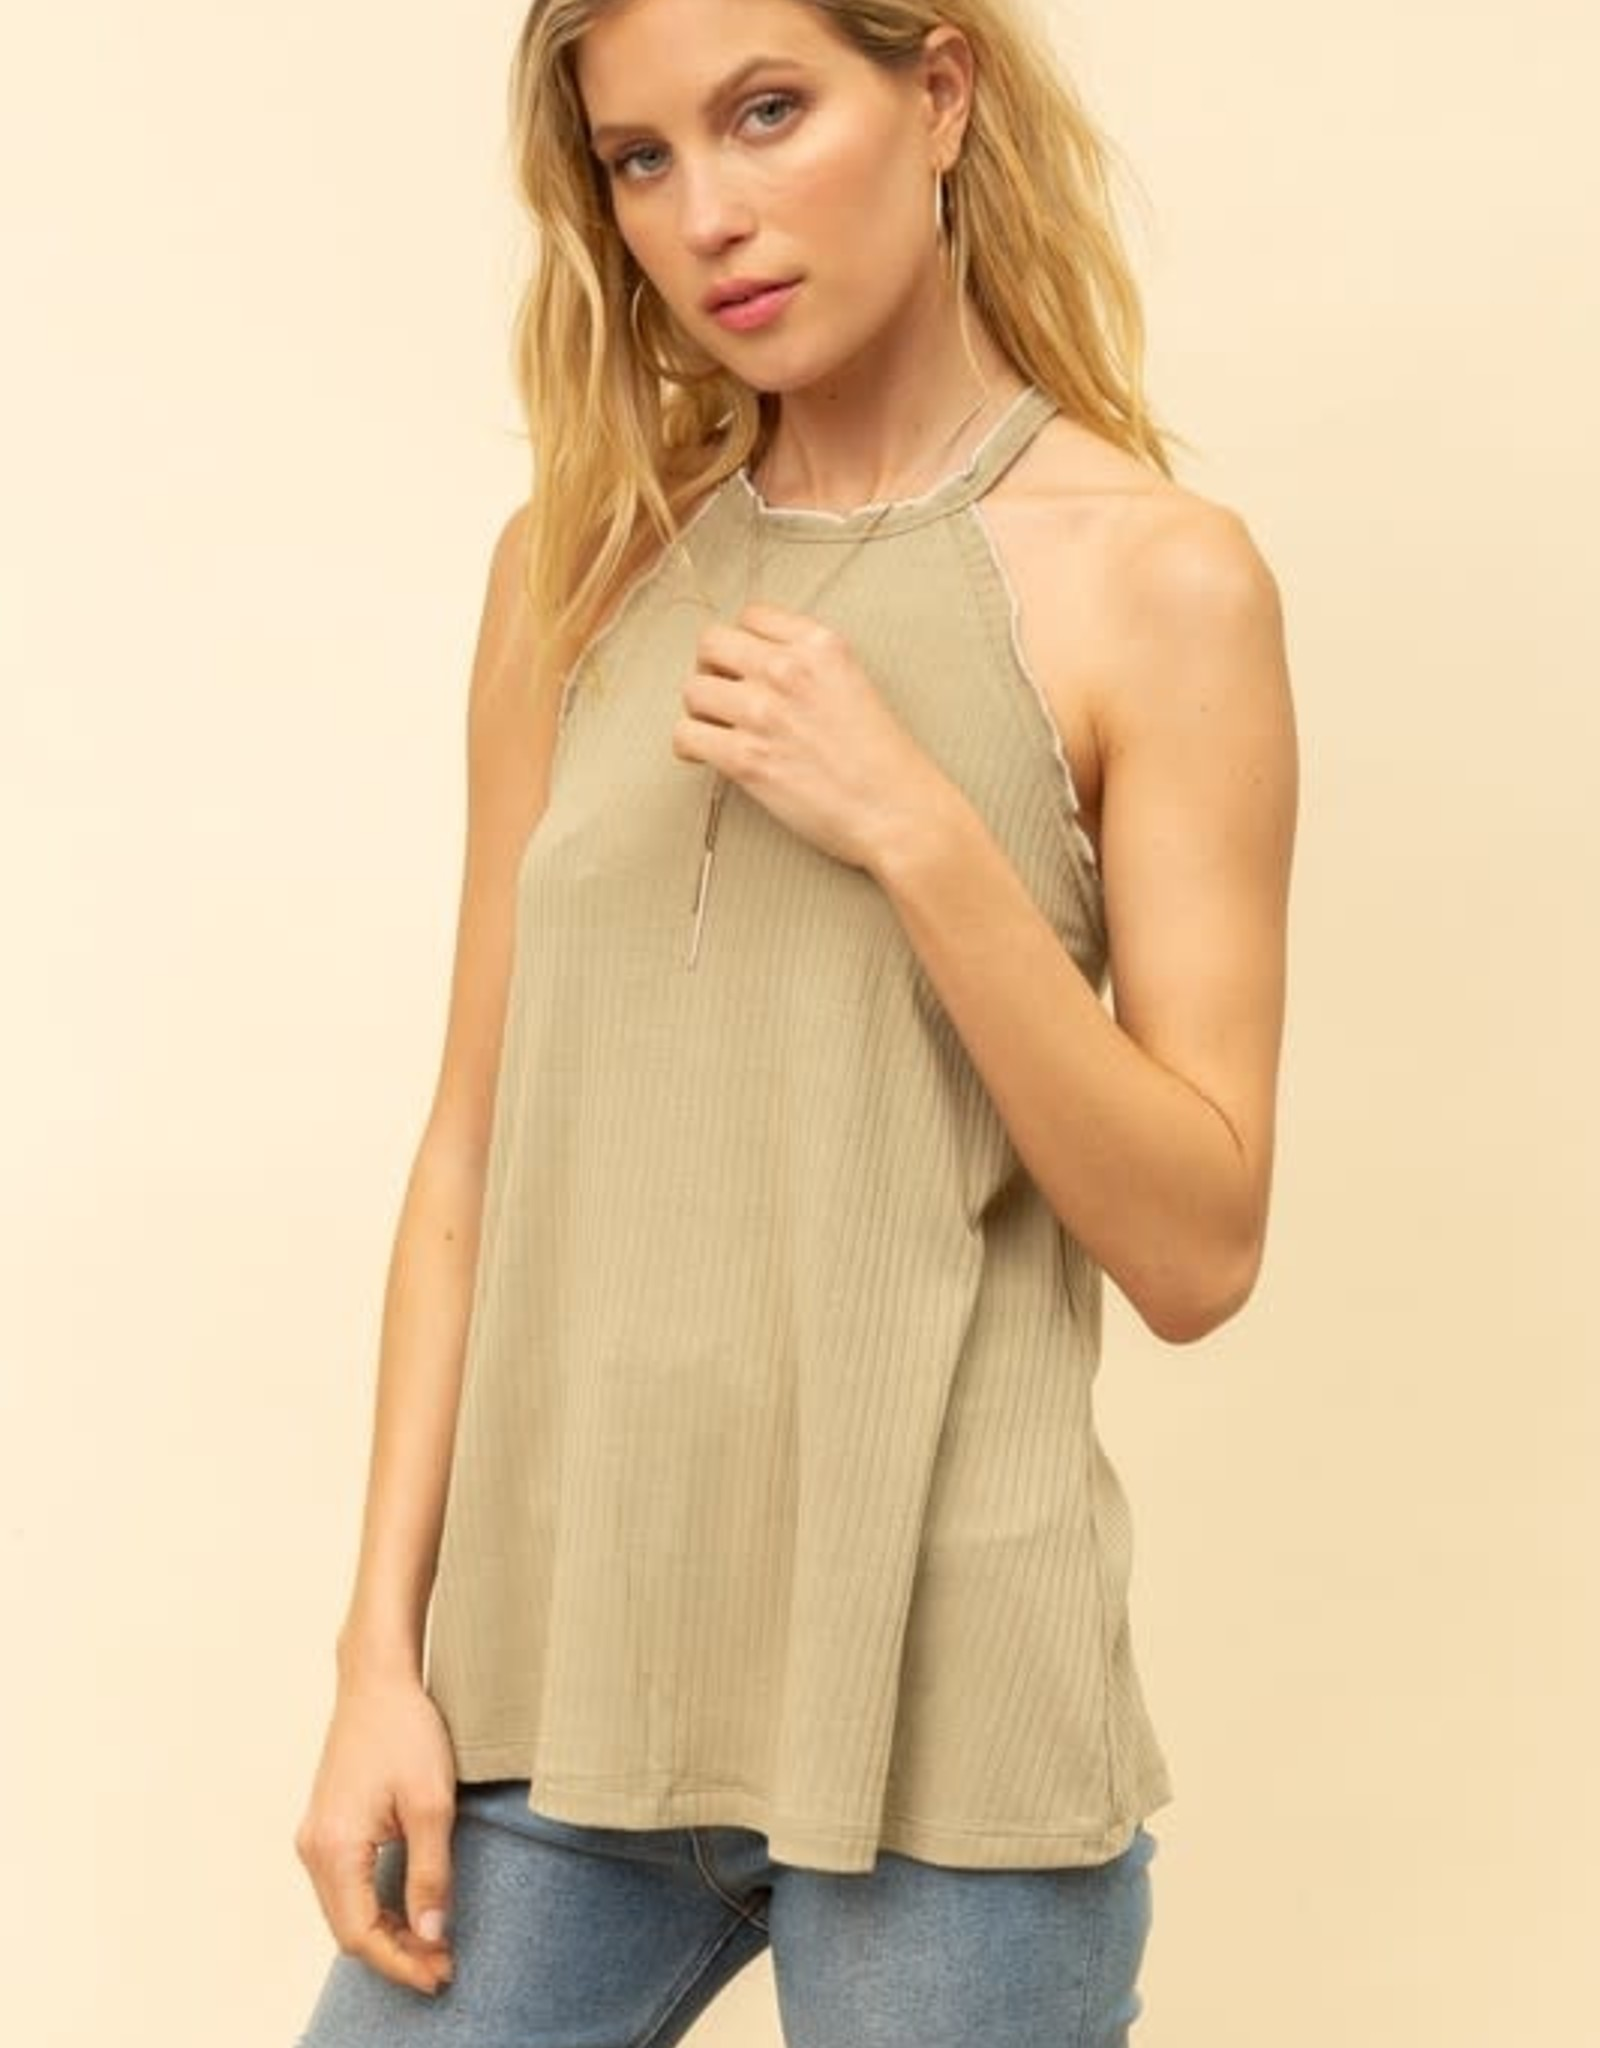 Oleanders Boutique Sitched high low tank